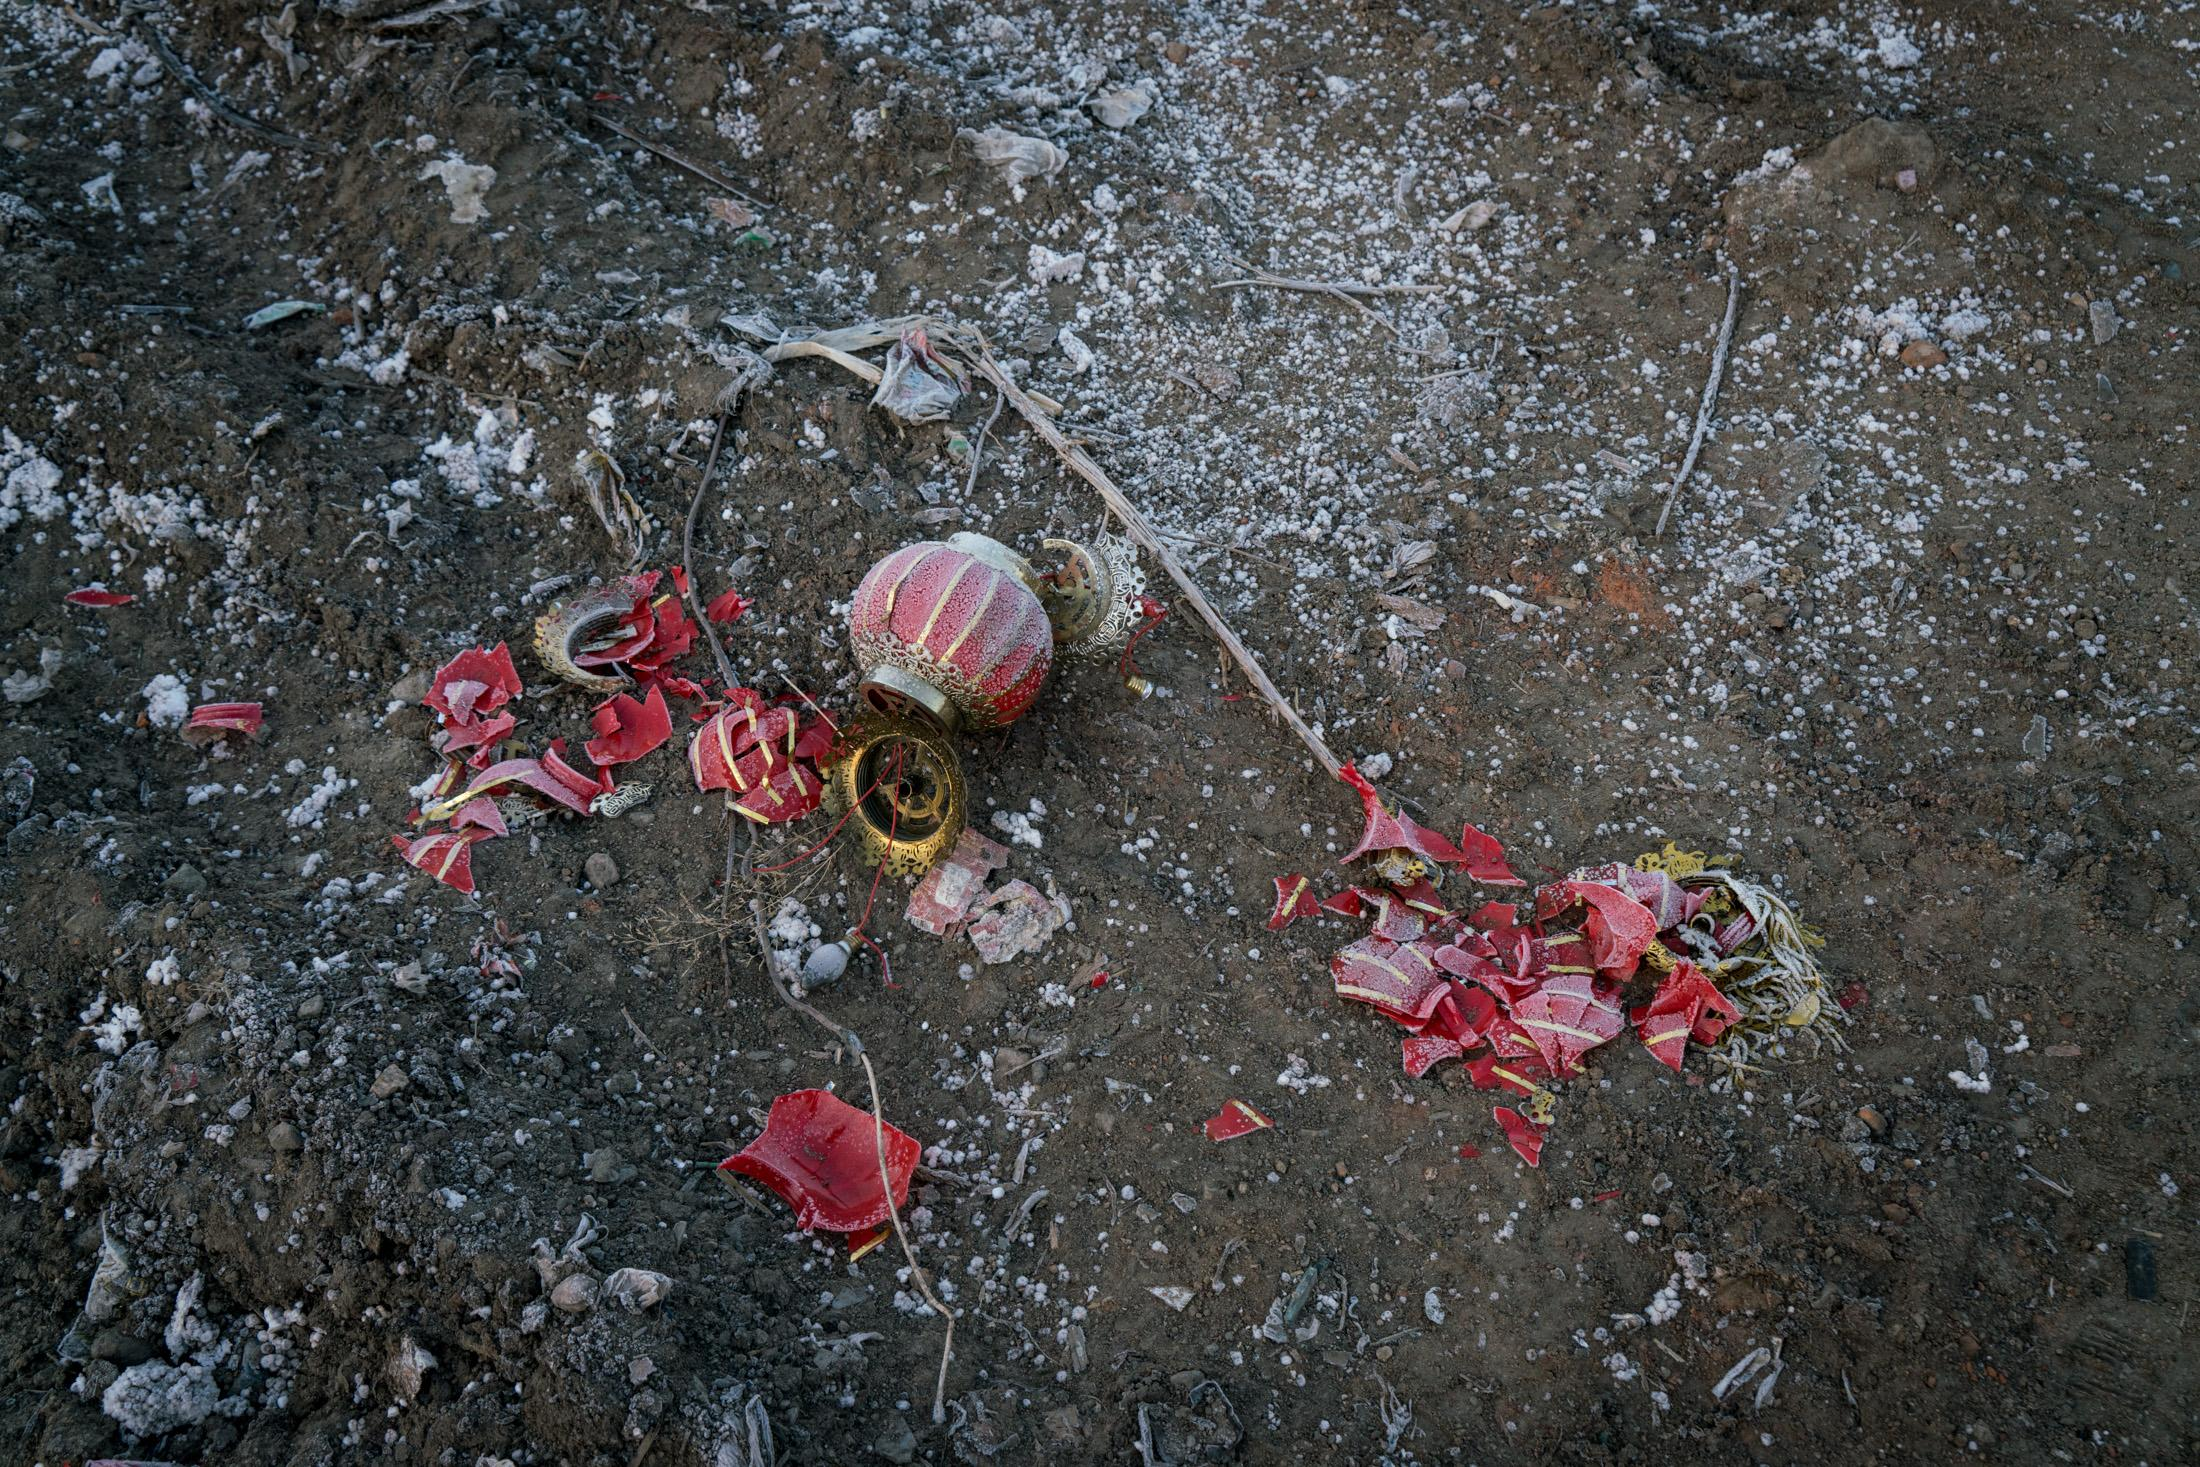 Broken home decorations left on the floor in the aftermath of demolition at Taizicheng village, Chongli, China, November 2016. Taizicheng village is designated to be the location for the Olympic village for 2022 Winter Olympics.